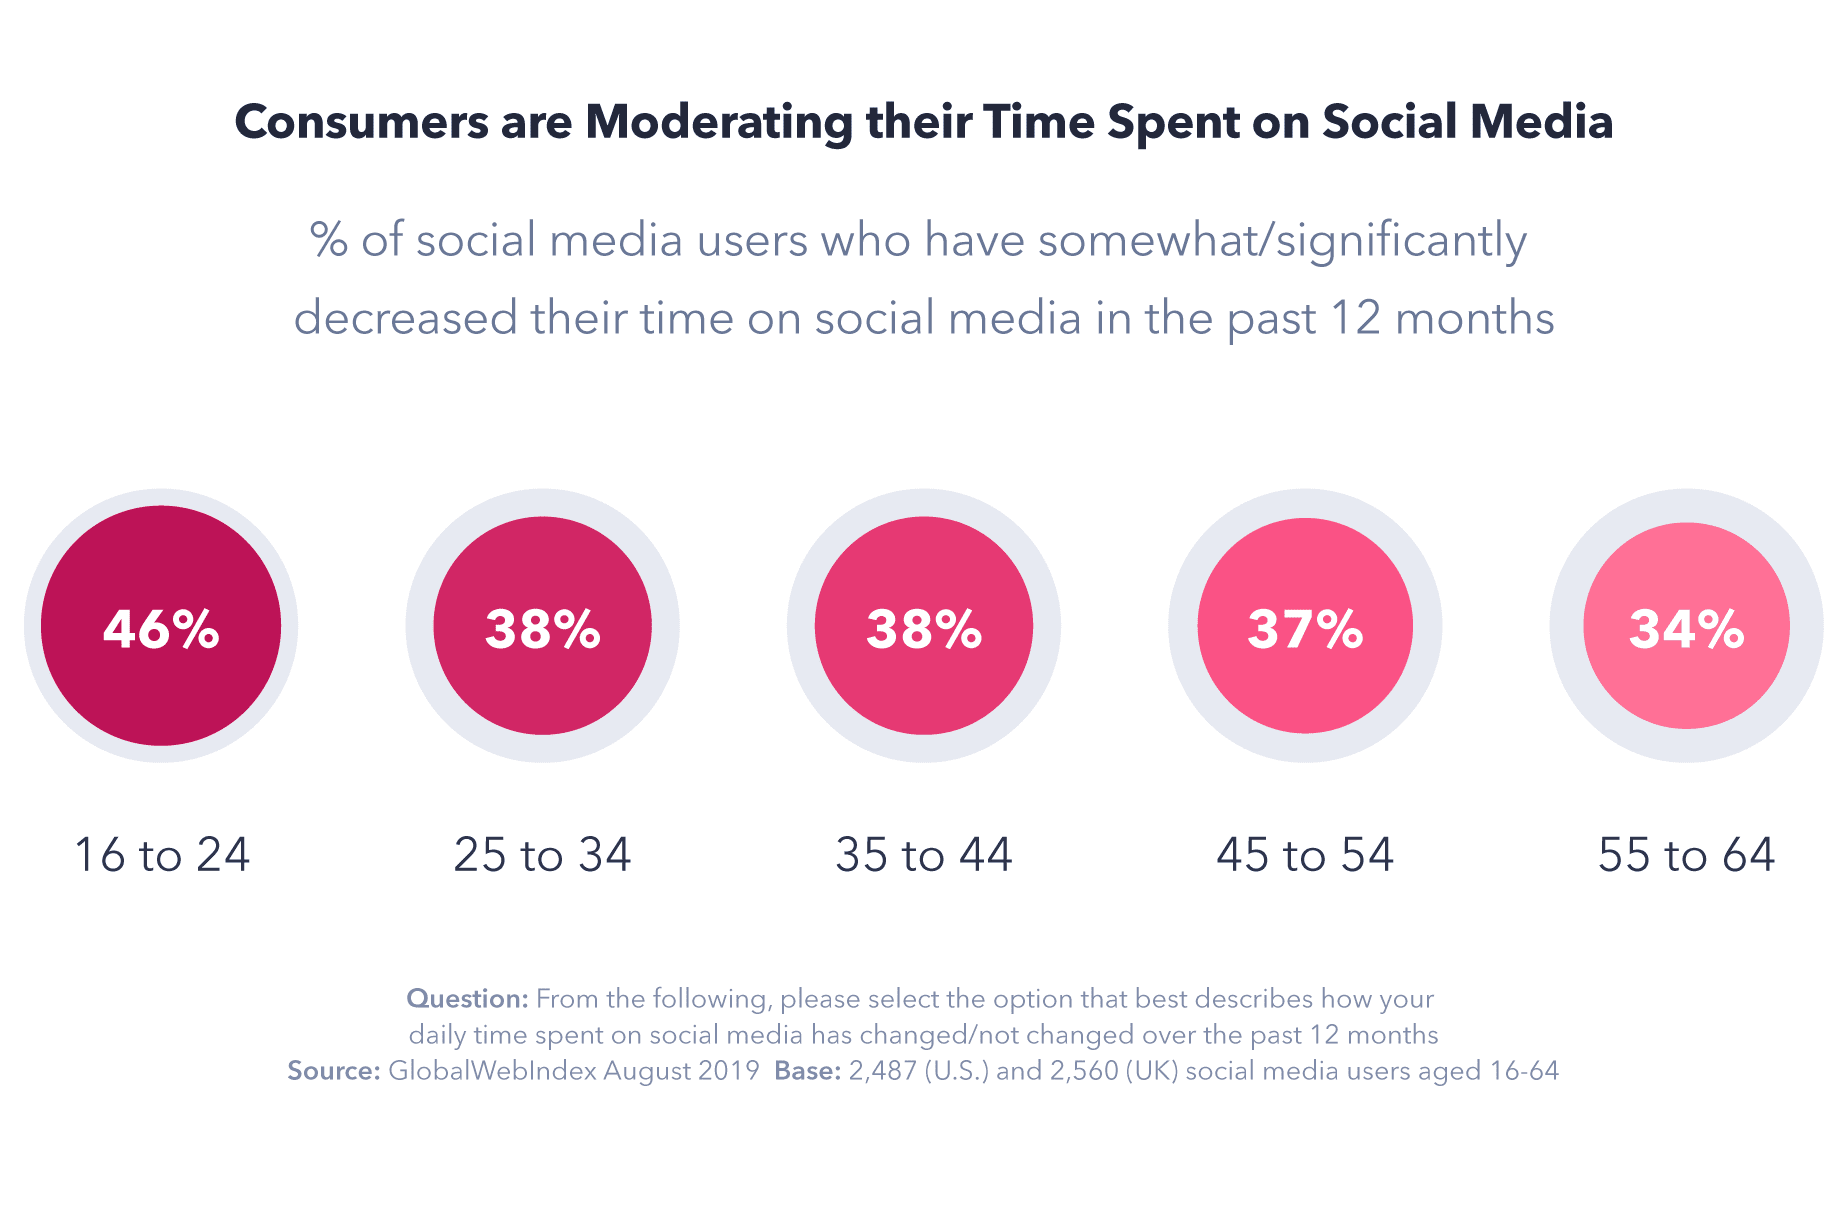 Consumers are moderating their time spent on social media - chart